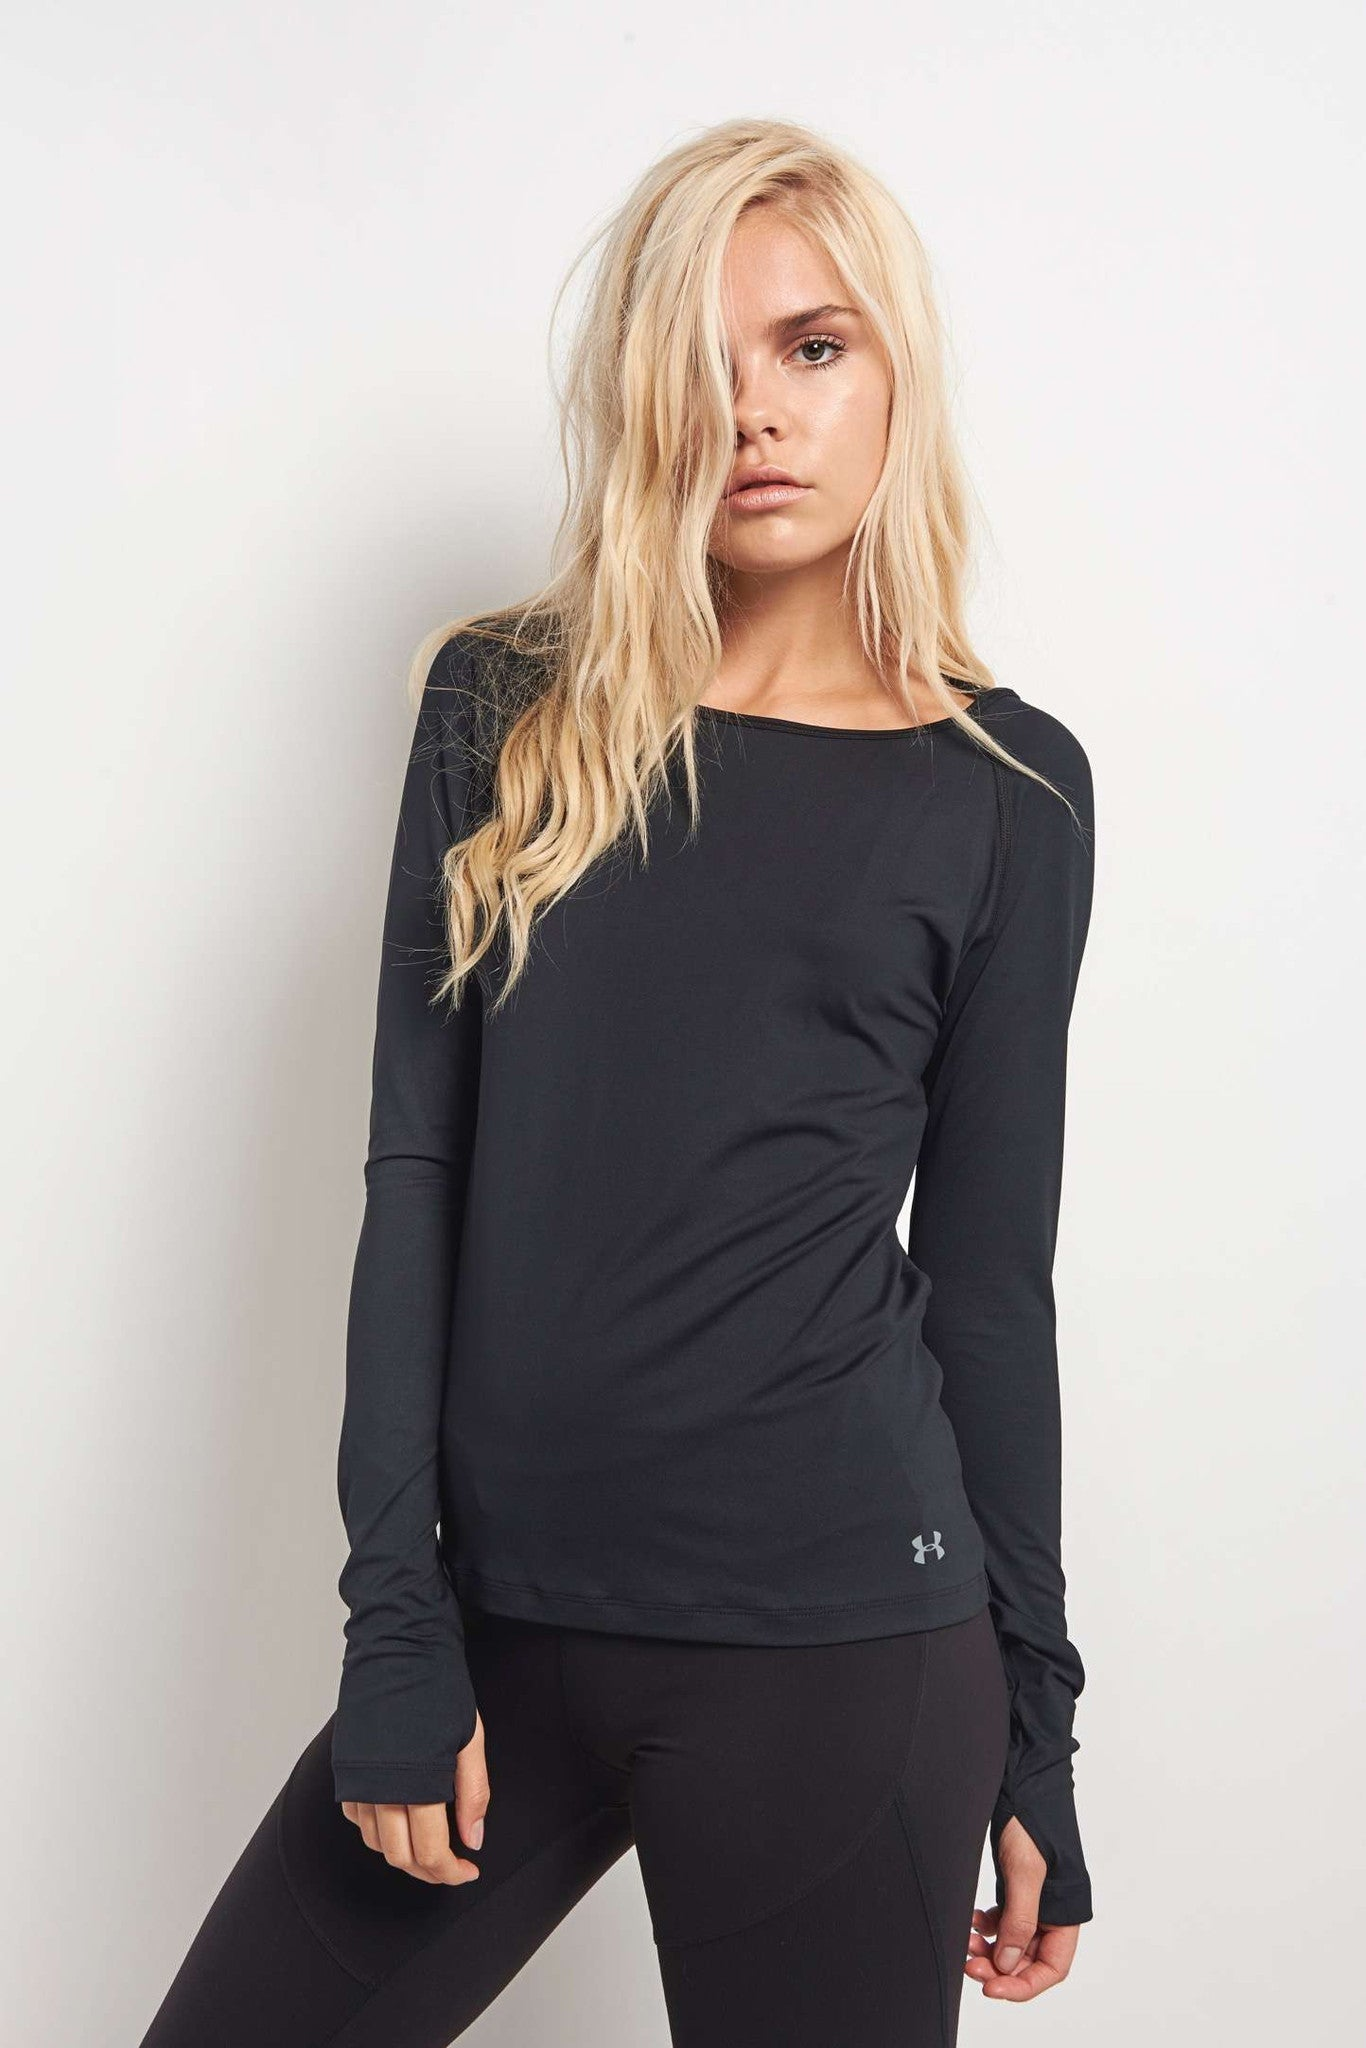 Under Armour Swing Keyhole Long Sleeve Top Black image 1 - The Sports Edit